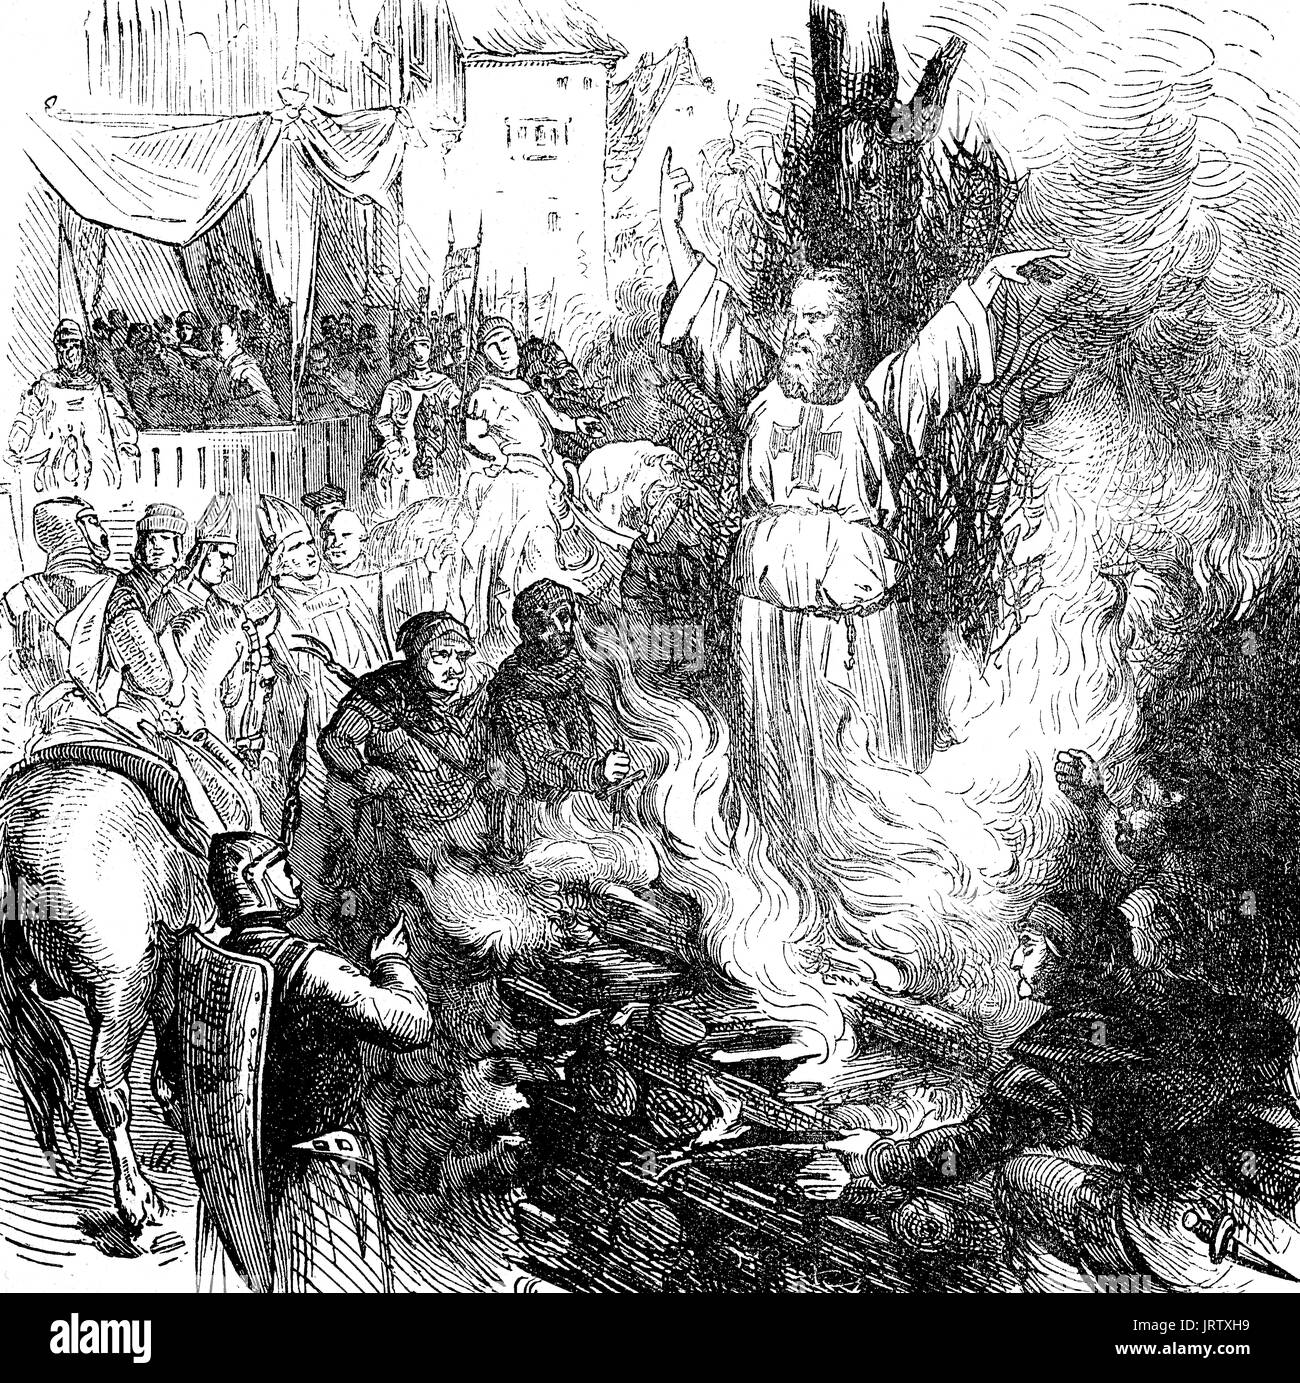 Burning at the stake, Jacques de Molay, c. 1243 - 18 March 1314, was the 23rd and last Grand Master of the Knights Templar - Stock Image